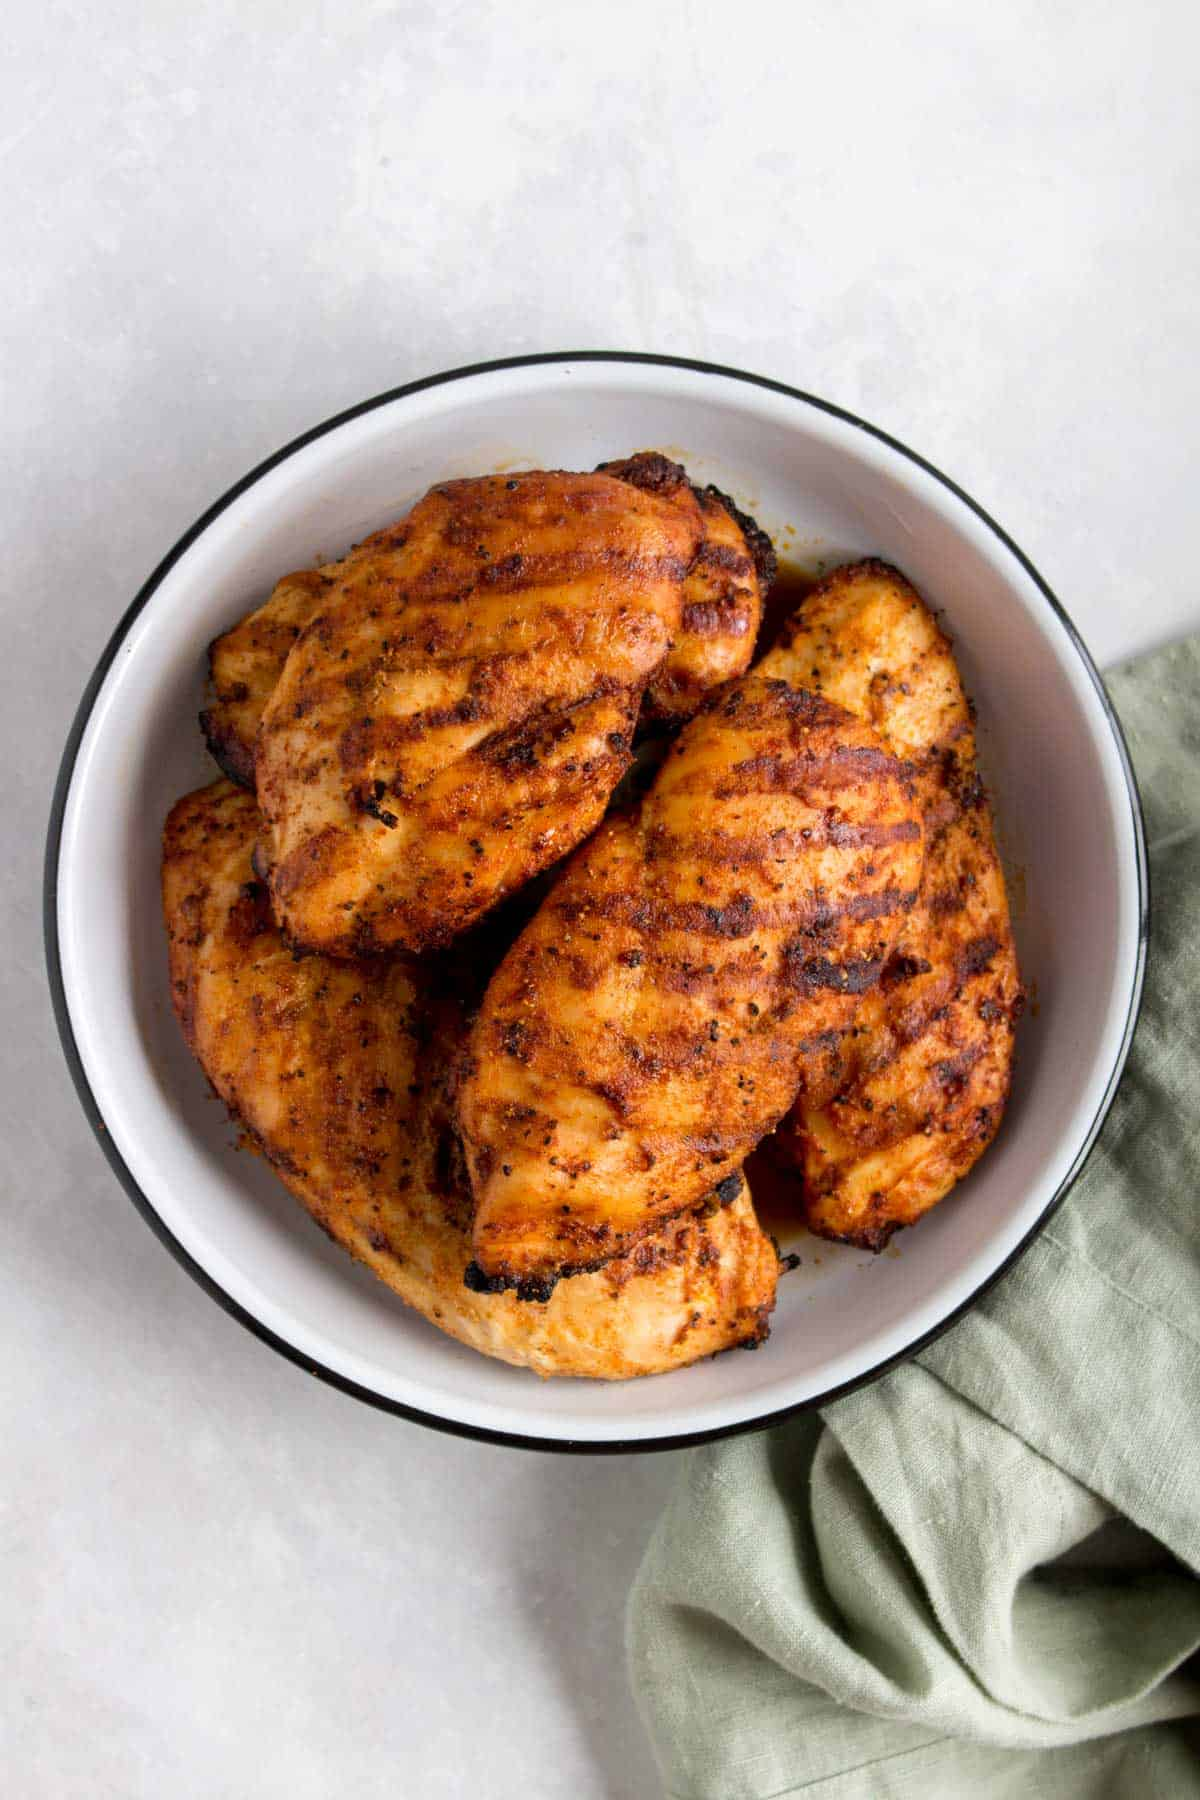 A plate with multiple grilled chicken breasts.